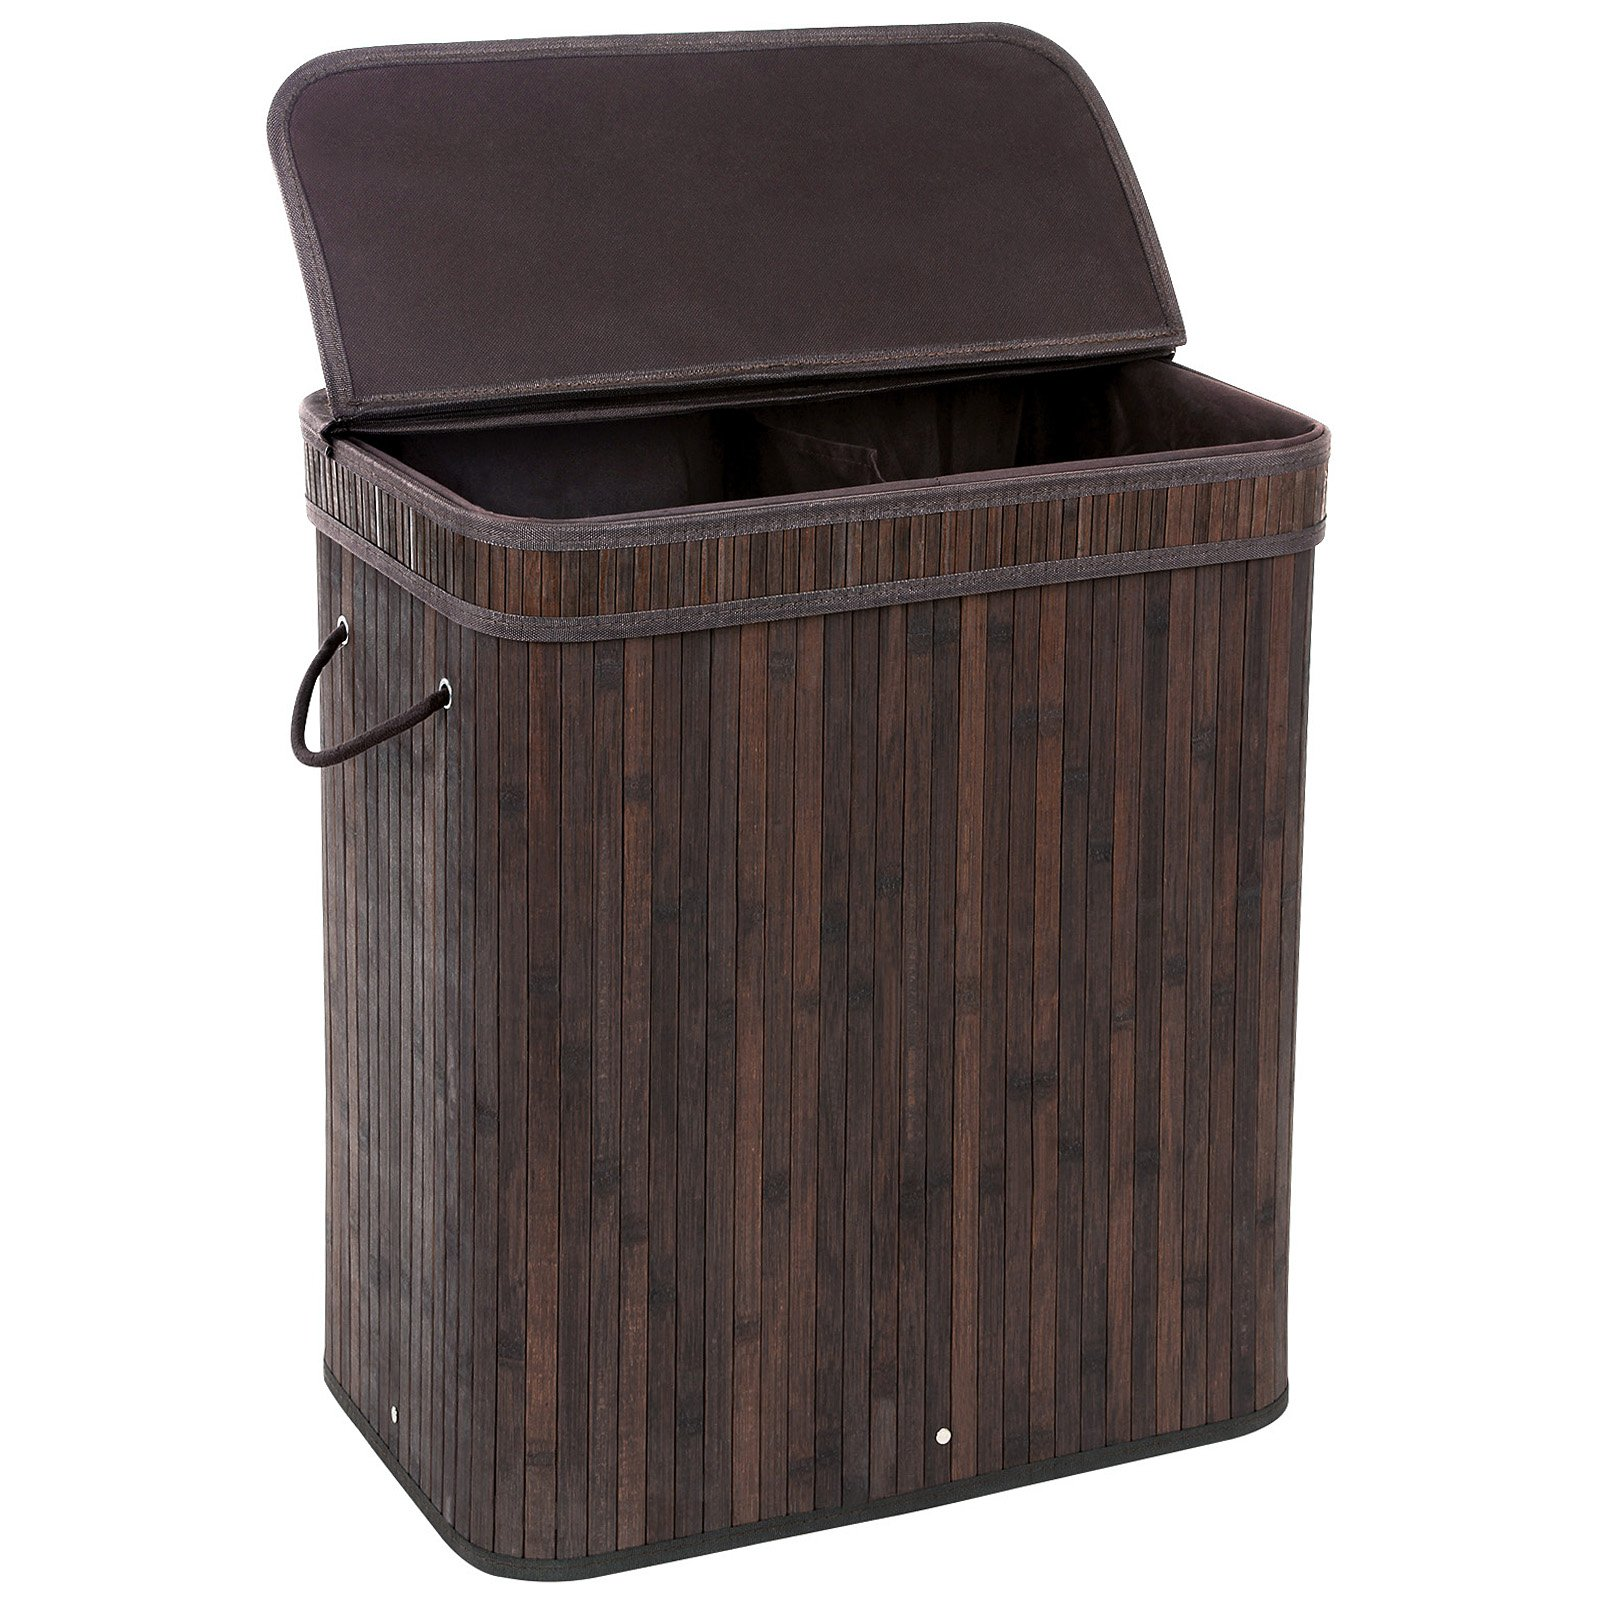 SONGMICS Divided Bamboo Laundry Basket Double Hamper with Lid Handles and Removable Liner Two-section Dirty Clothes Storage Sorter Rectangular Dark Brown ULCB64B by SONGMICS